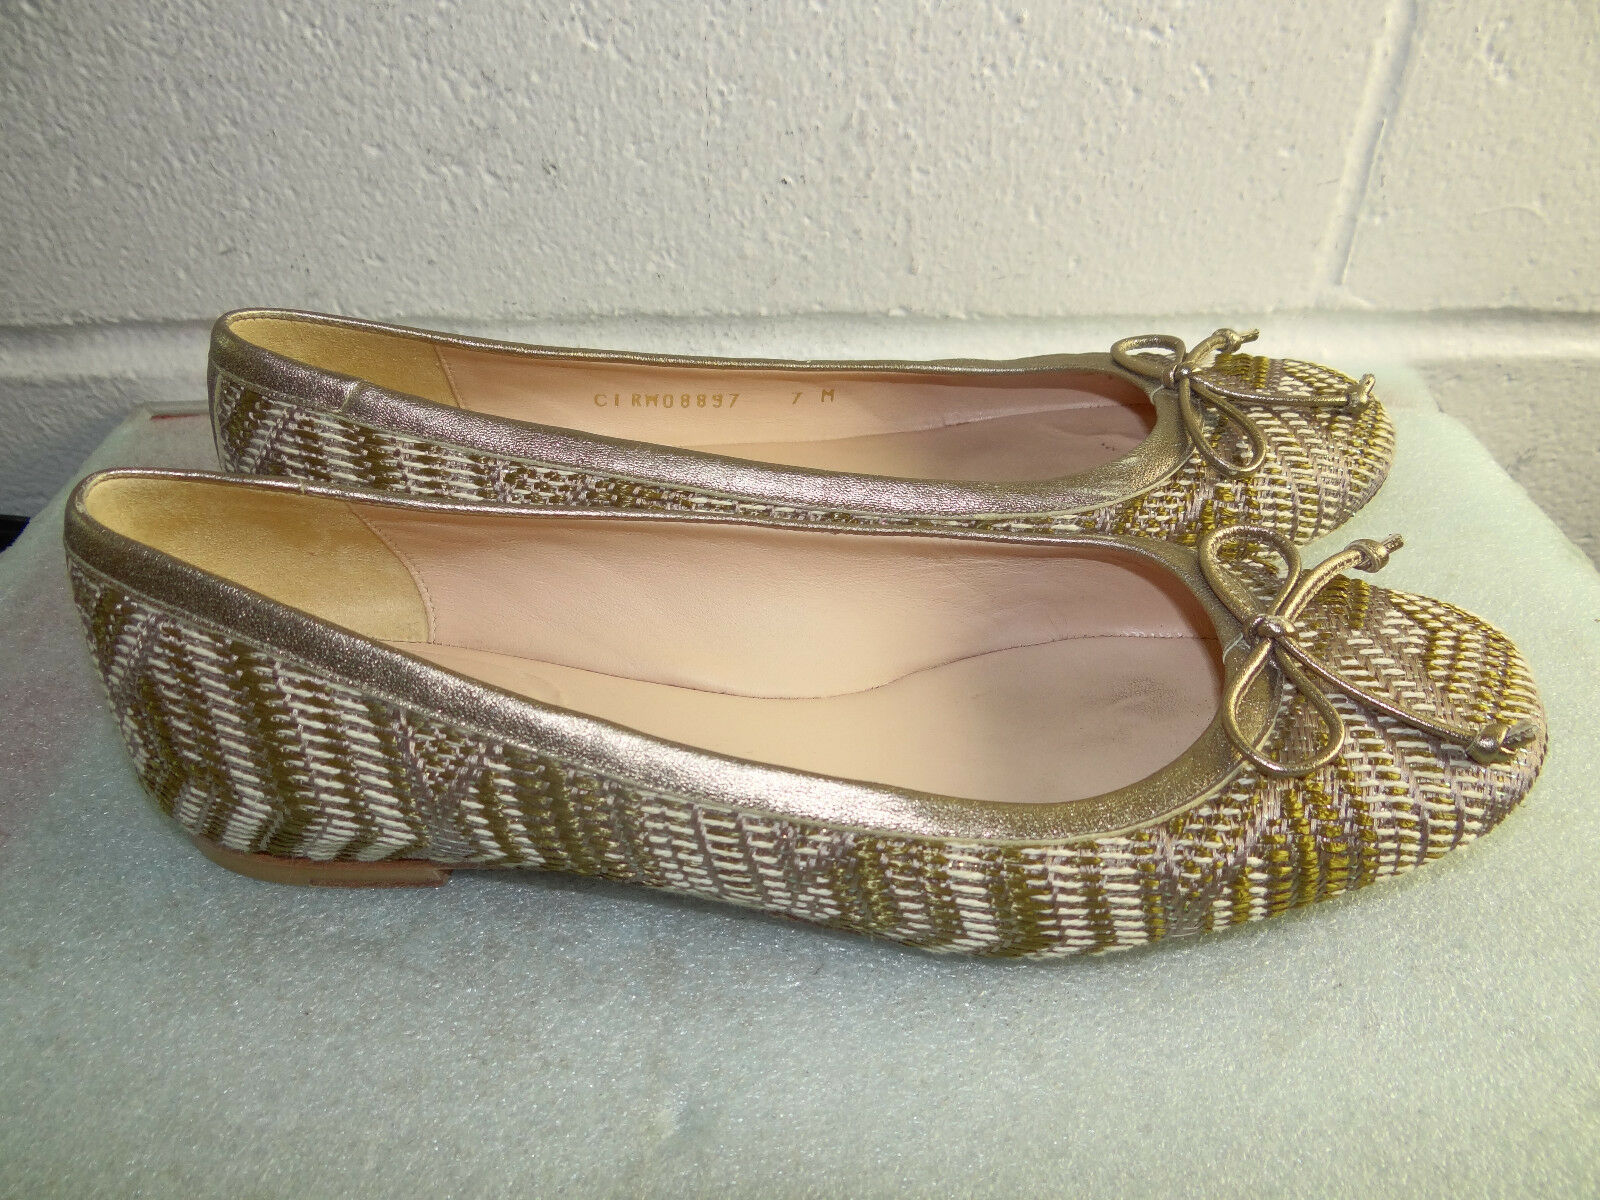 STUART WEITZMAN Multi-Coloree Fabric Flats donna Dimensione 7M Made in ITALY